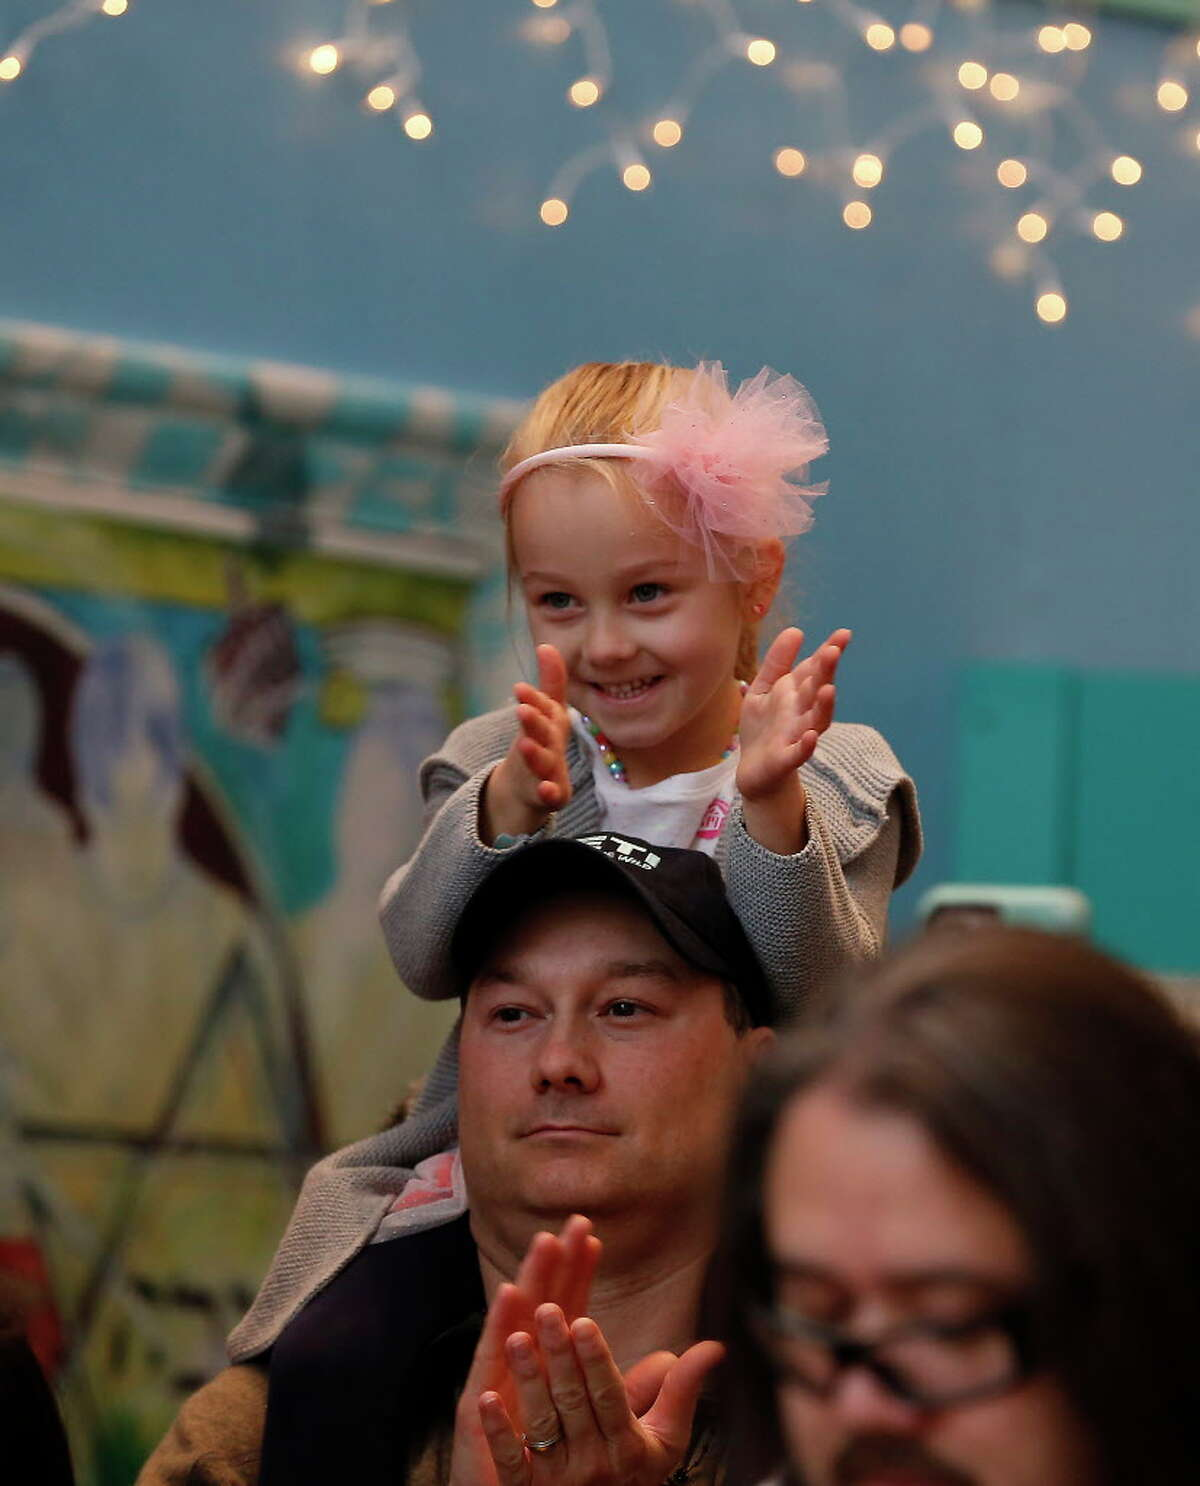 Elizabeth Baudin, 4, enjoys the view from her father's, Brandon, shoulders during The Children's Museum of Houston's Rockin' New Year's Noon Bash Sunday, Dec. 31, 2017, in Houston. The event is the city's longest-running New Year's Eve celebration just for kids. This end-of-year bash rings in the New Year at the stroke of noon with a parade and shimmering ball drop.